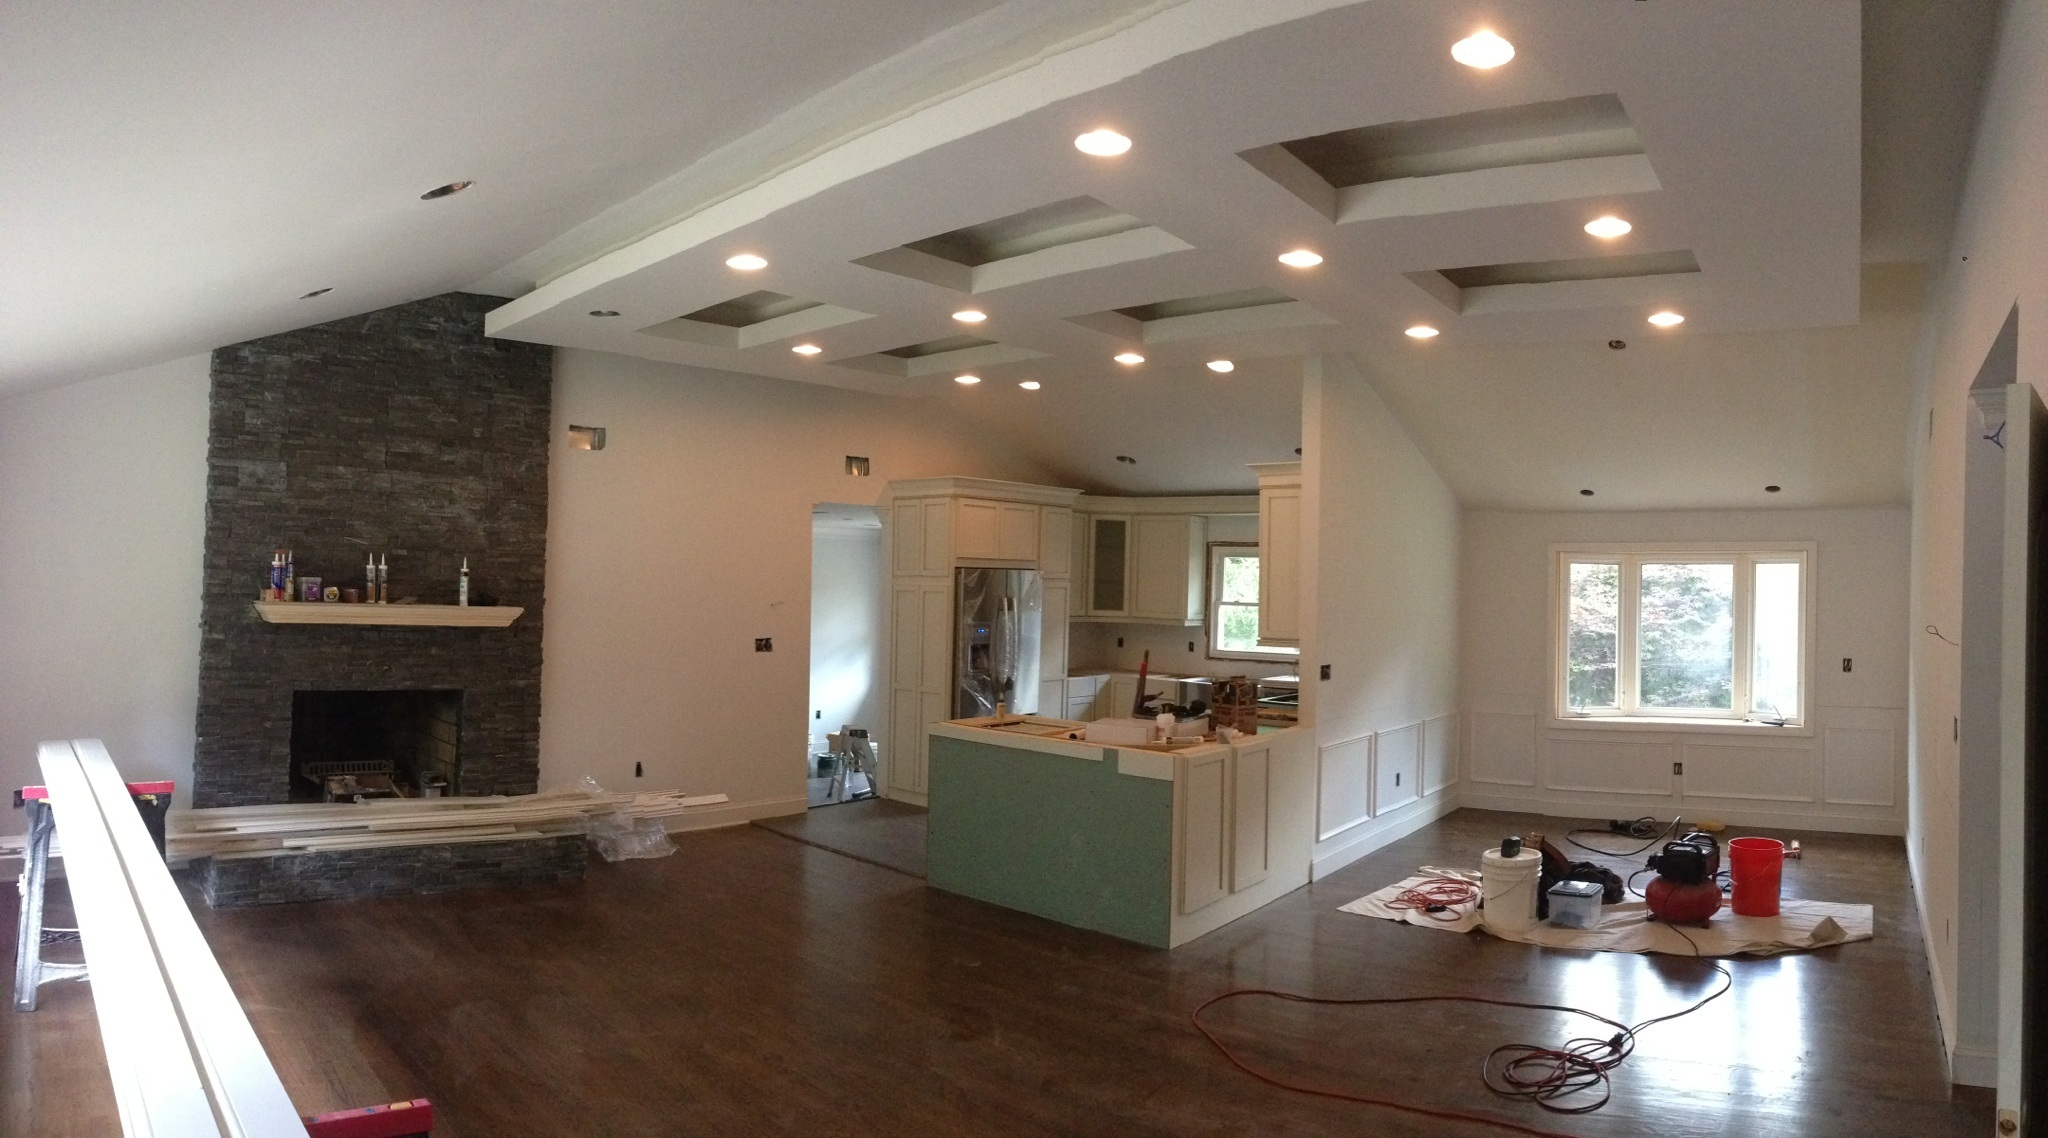 2016 Guide to Home Remodeling in and Around Central Valley | Central on home builder, garden company, home health company, home furniture company, carpet cleaning company, home management company, home renovation, home plumbing company, home jewelry company, lawn care company, home entertainment company, home security company, home moving company, home window replacement, home decorating company, home maintenance company, tile company, home cleaning company, home remodelers, construction company,